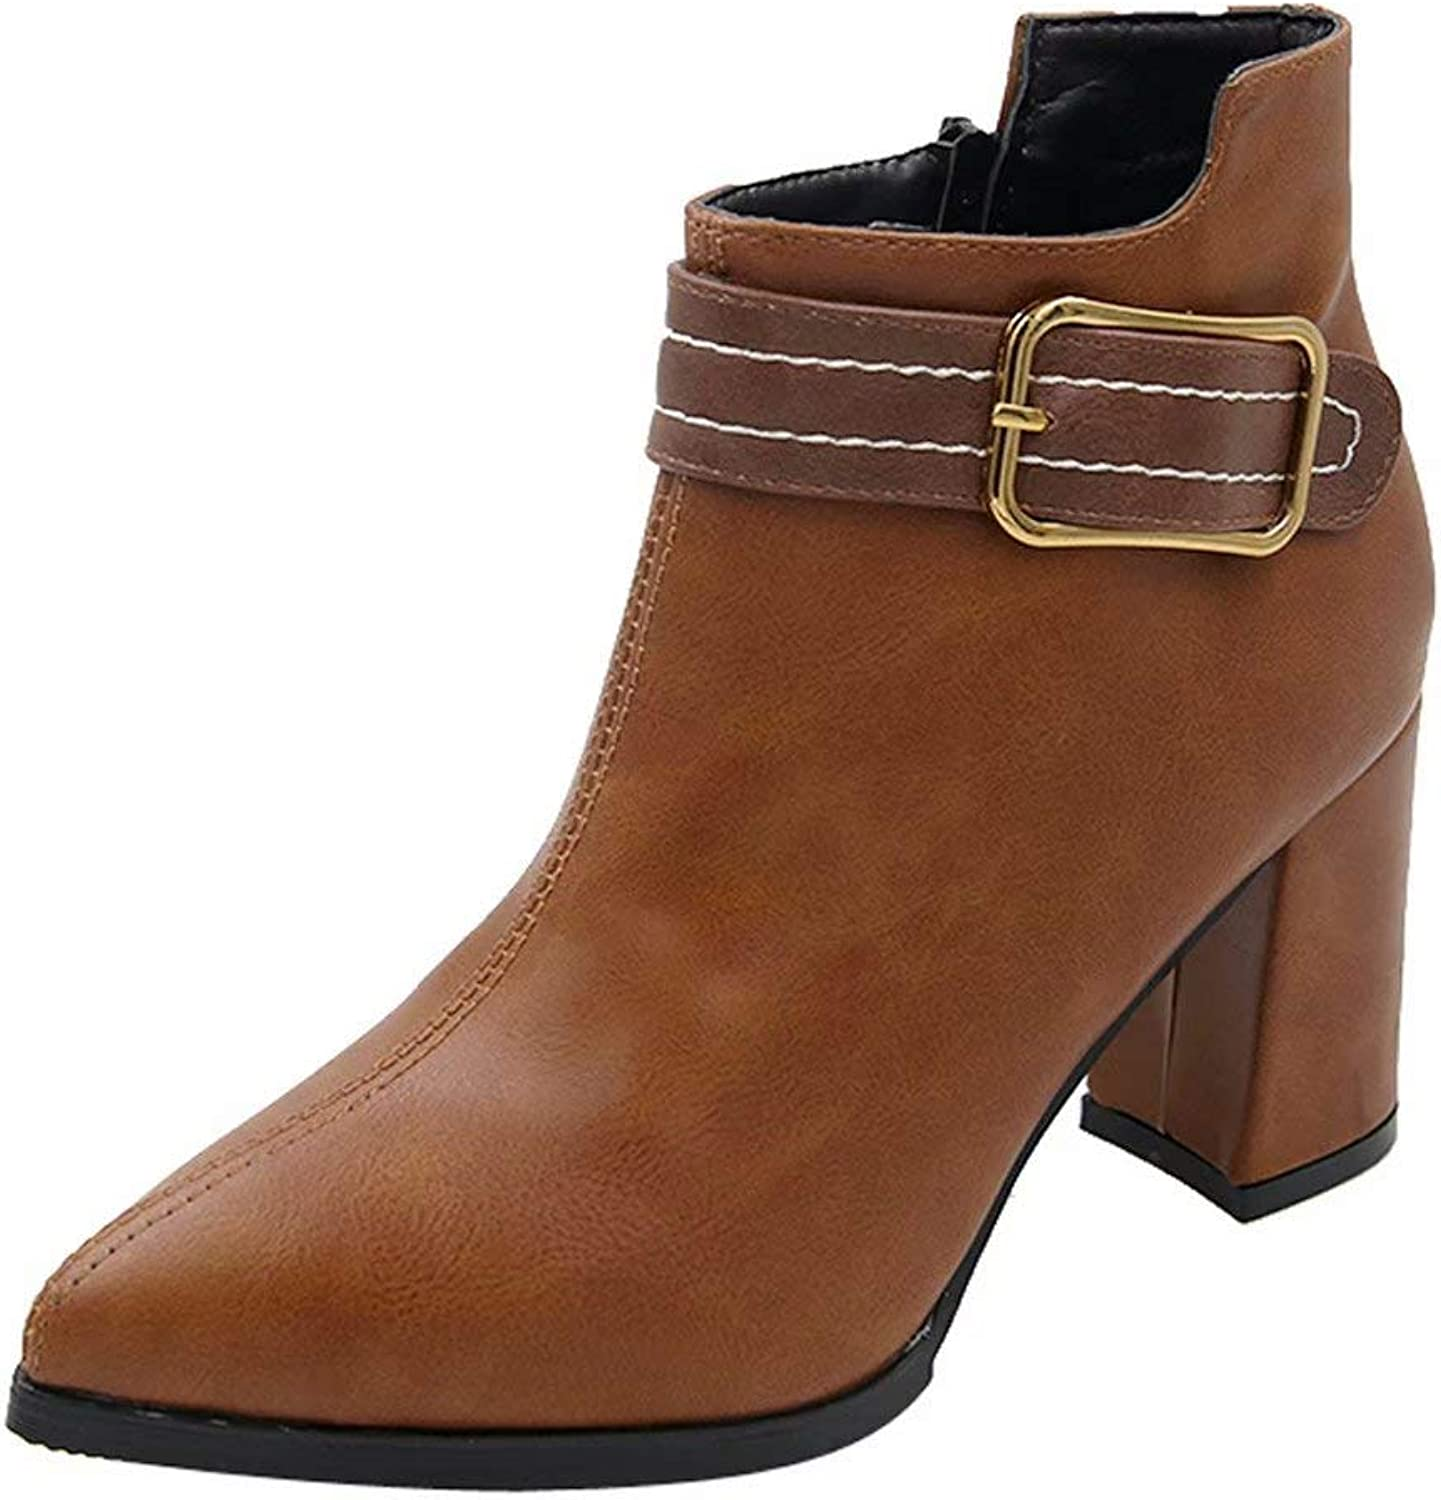 Women High Heel shoes Martain Boot Leather Solid color Round Toe Zipper shoes